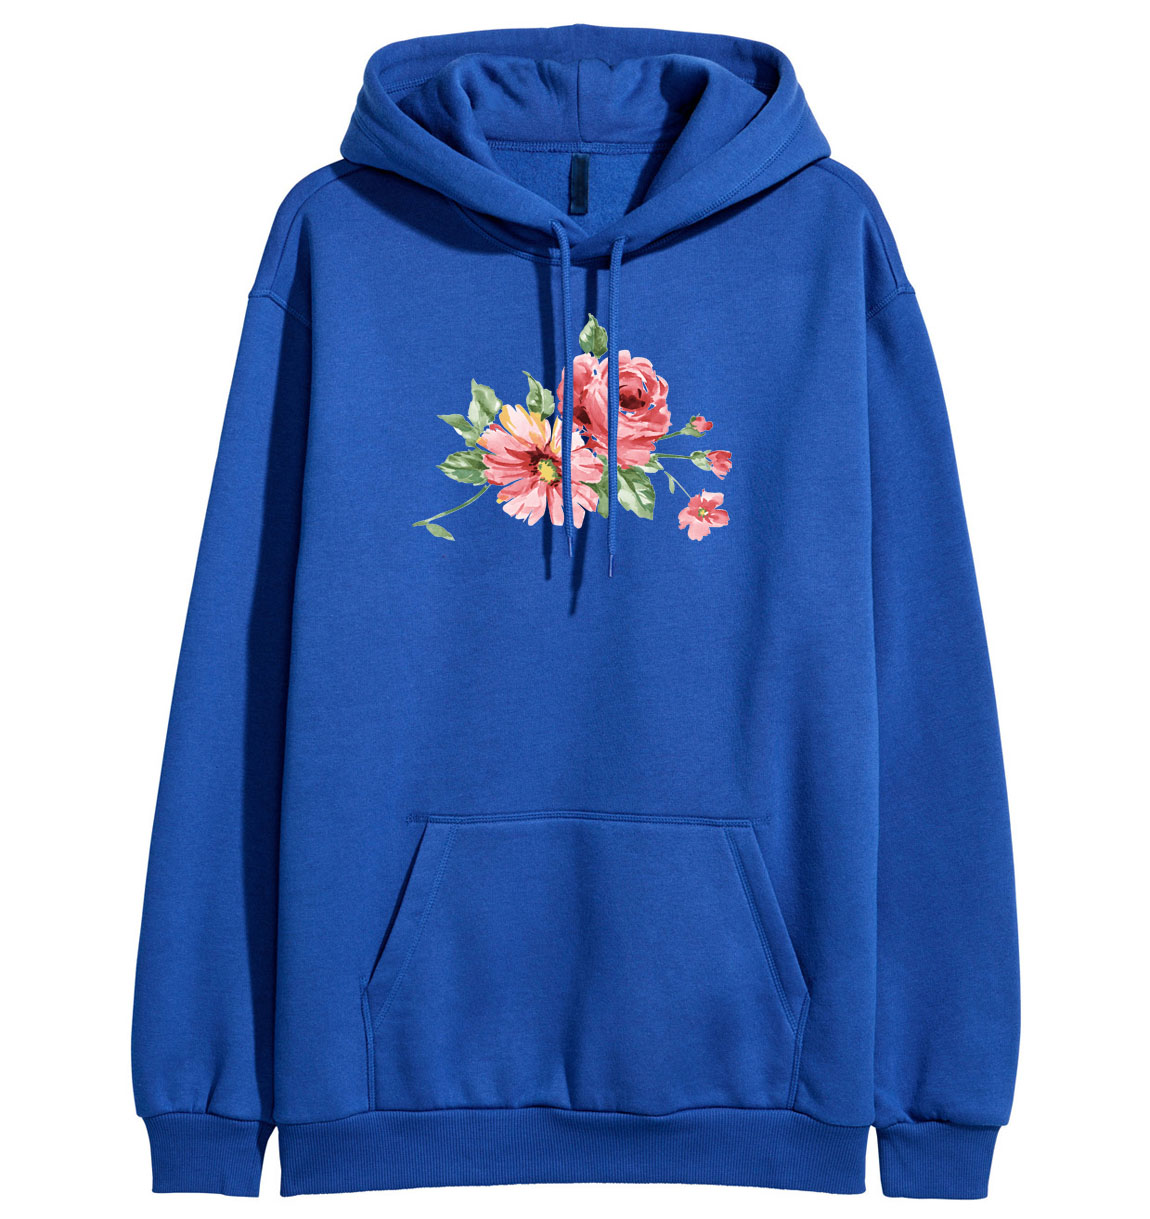 Women flower print long sleeve hoodies 2019 autumn winter fleece pullovers streetwear femme fitness sweatshirts pullovers